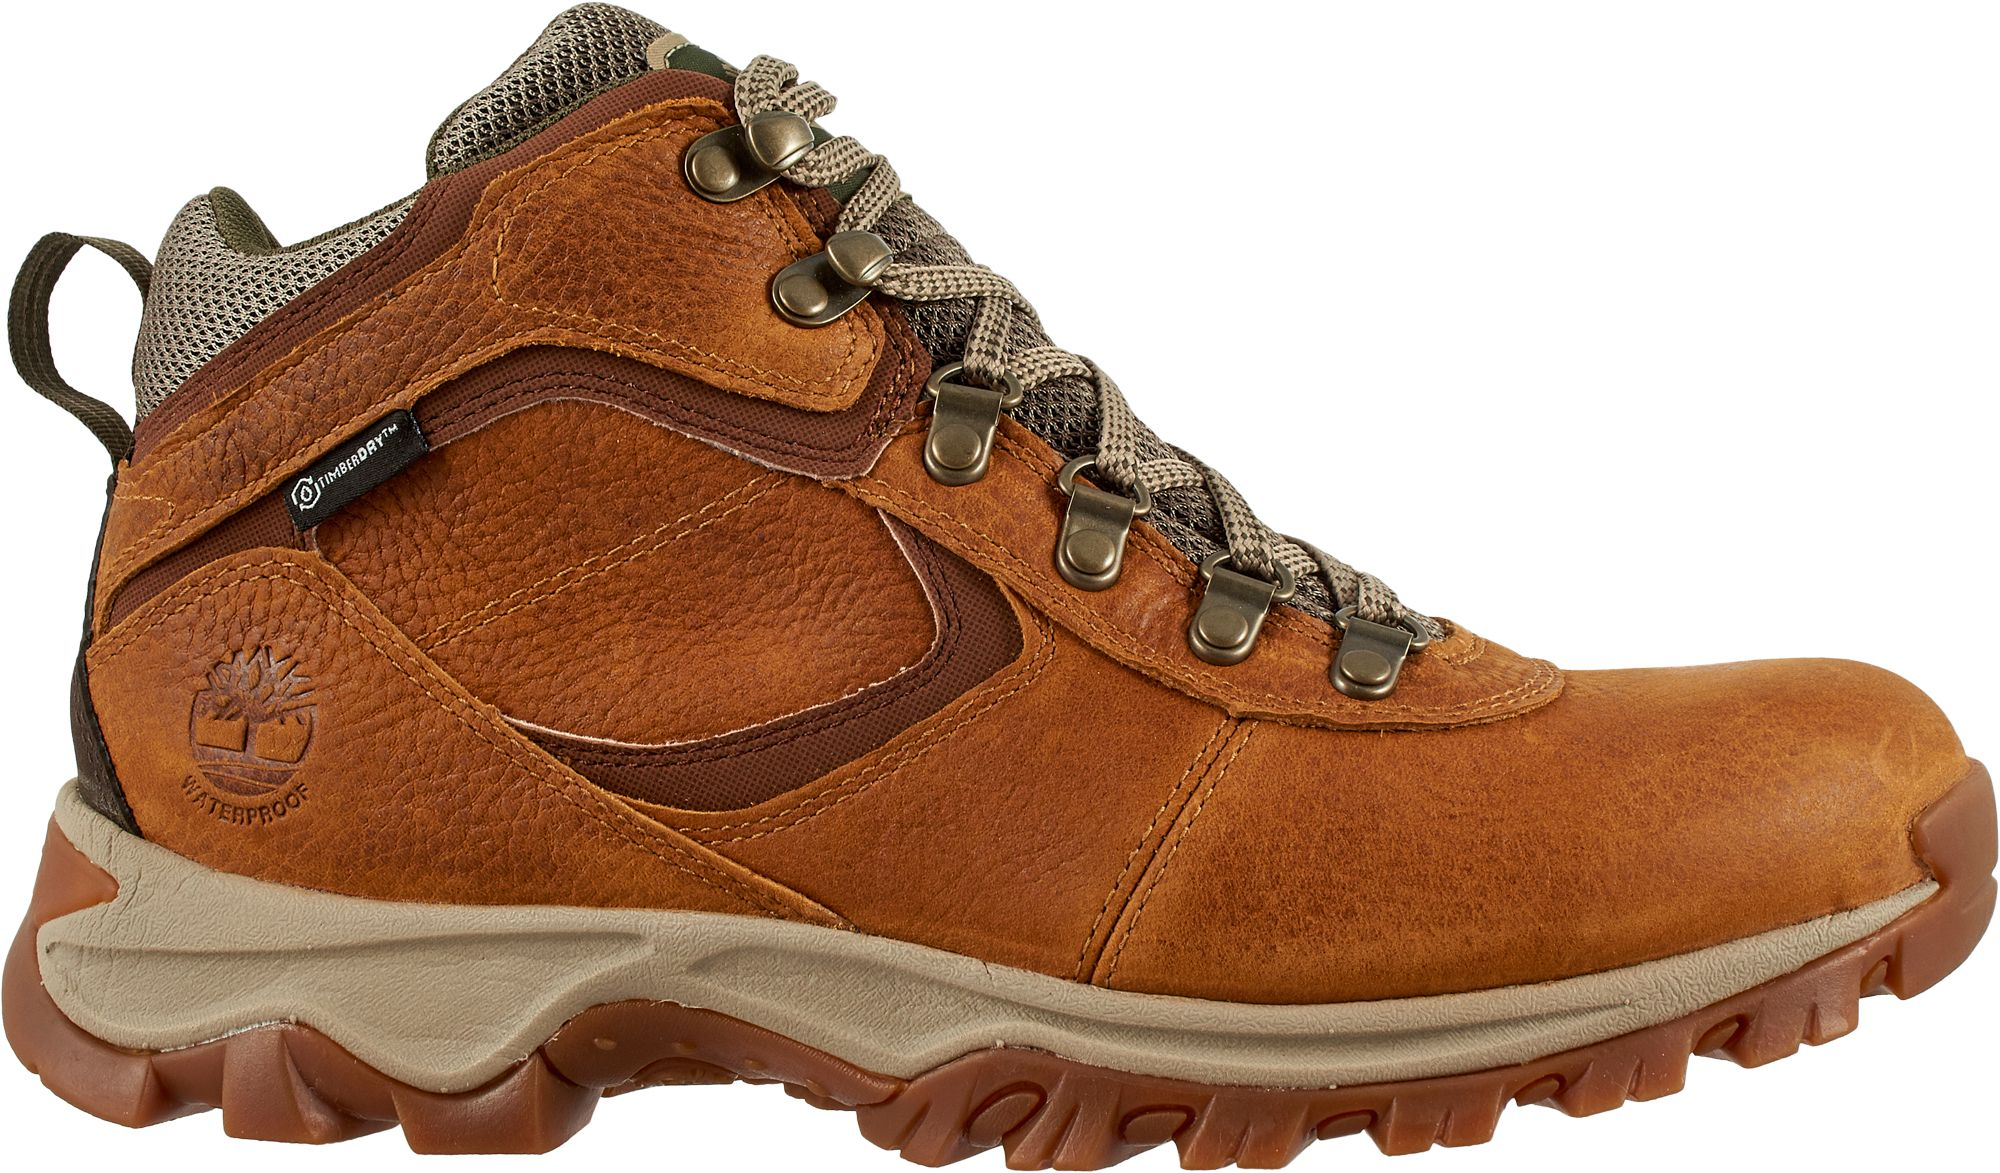 Timberland Men's Mt. Maddsen Mid Waterproof Hiking Boots by Timberland